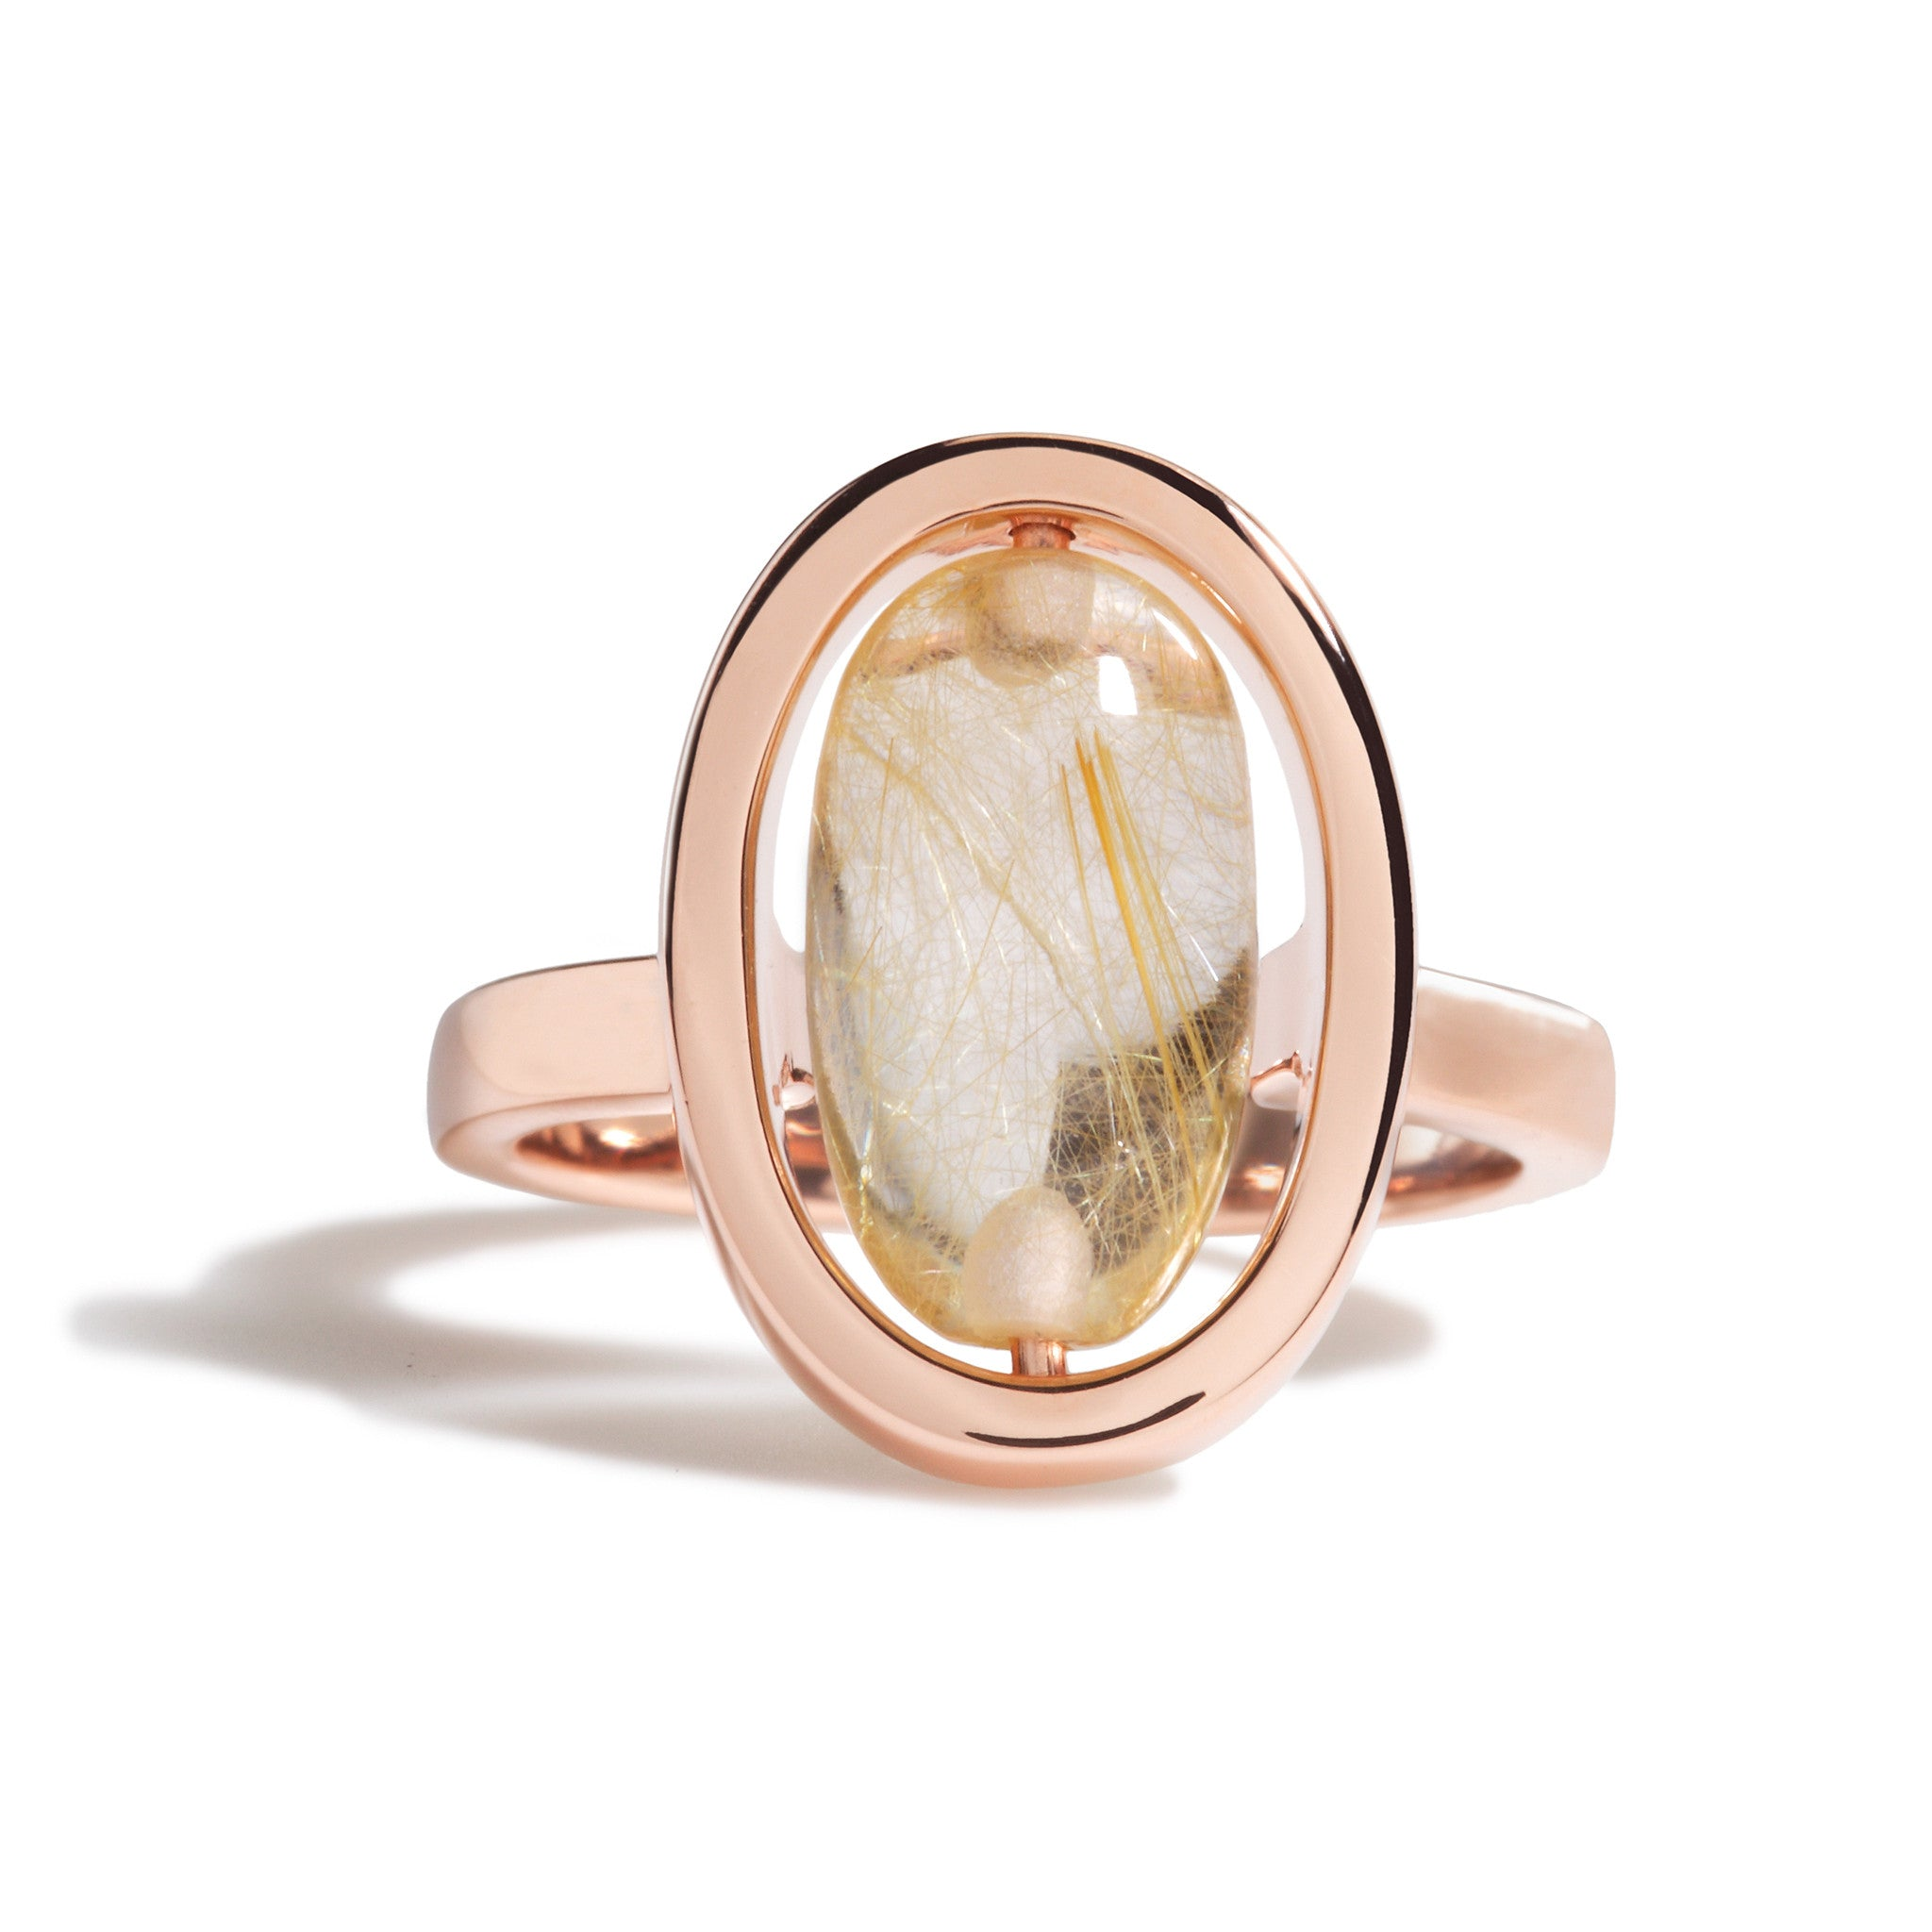 gold white of copy diamonds rose pomellato ritratto ring rings with milky quartz products and